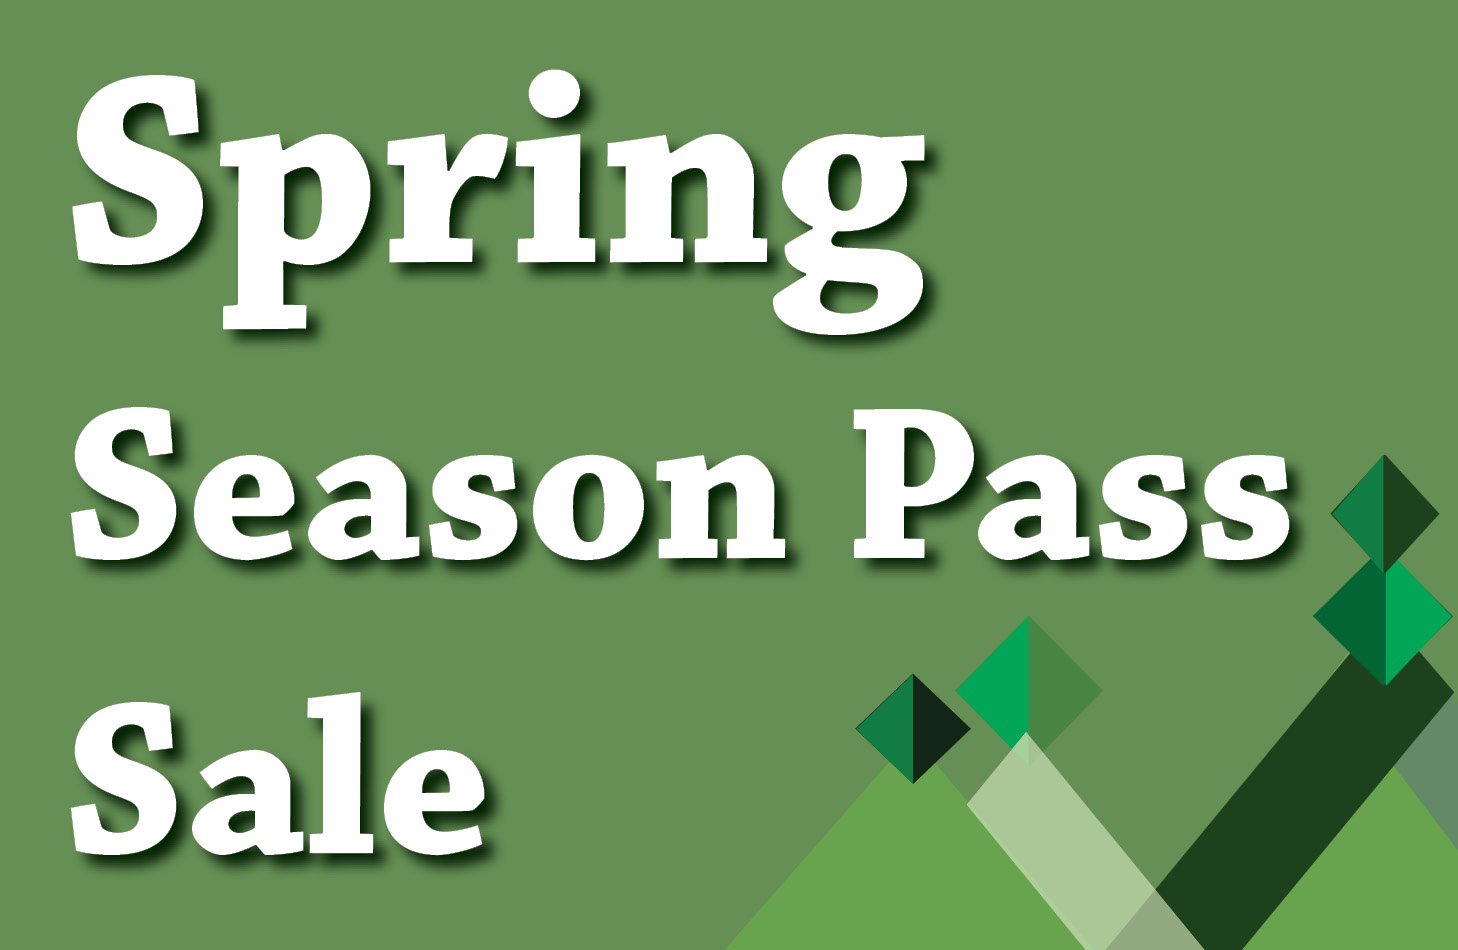 Spring Season Pass Sale